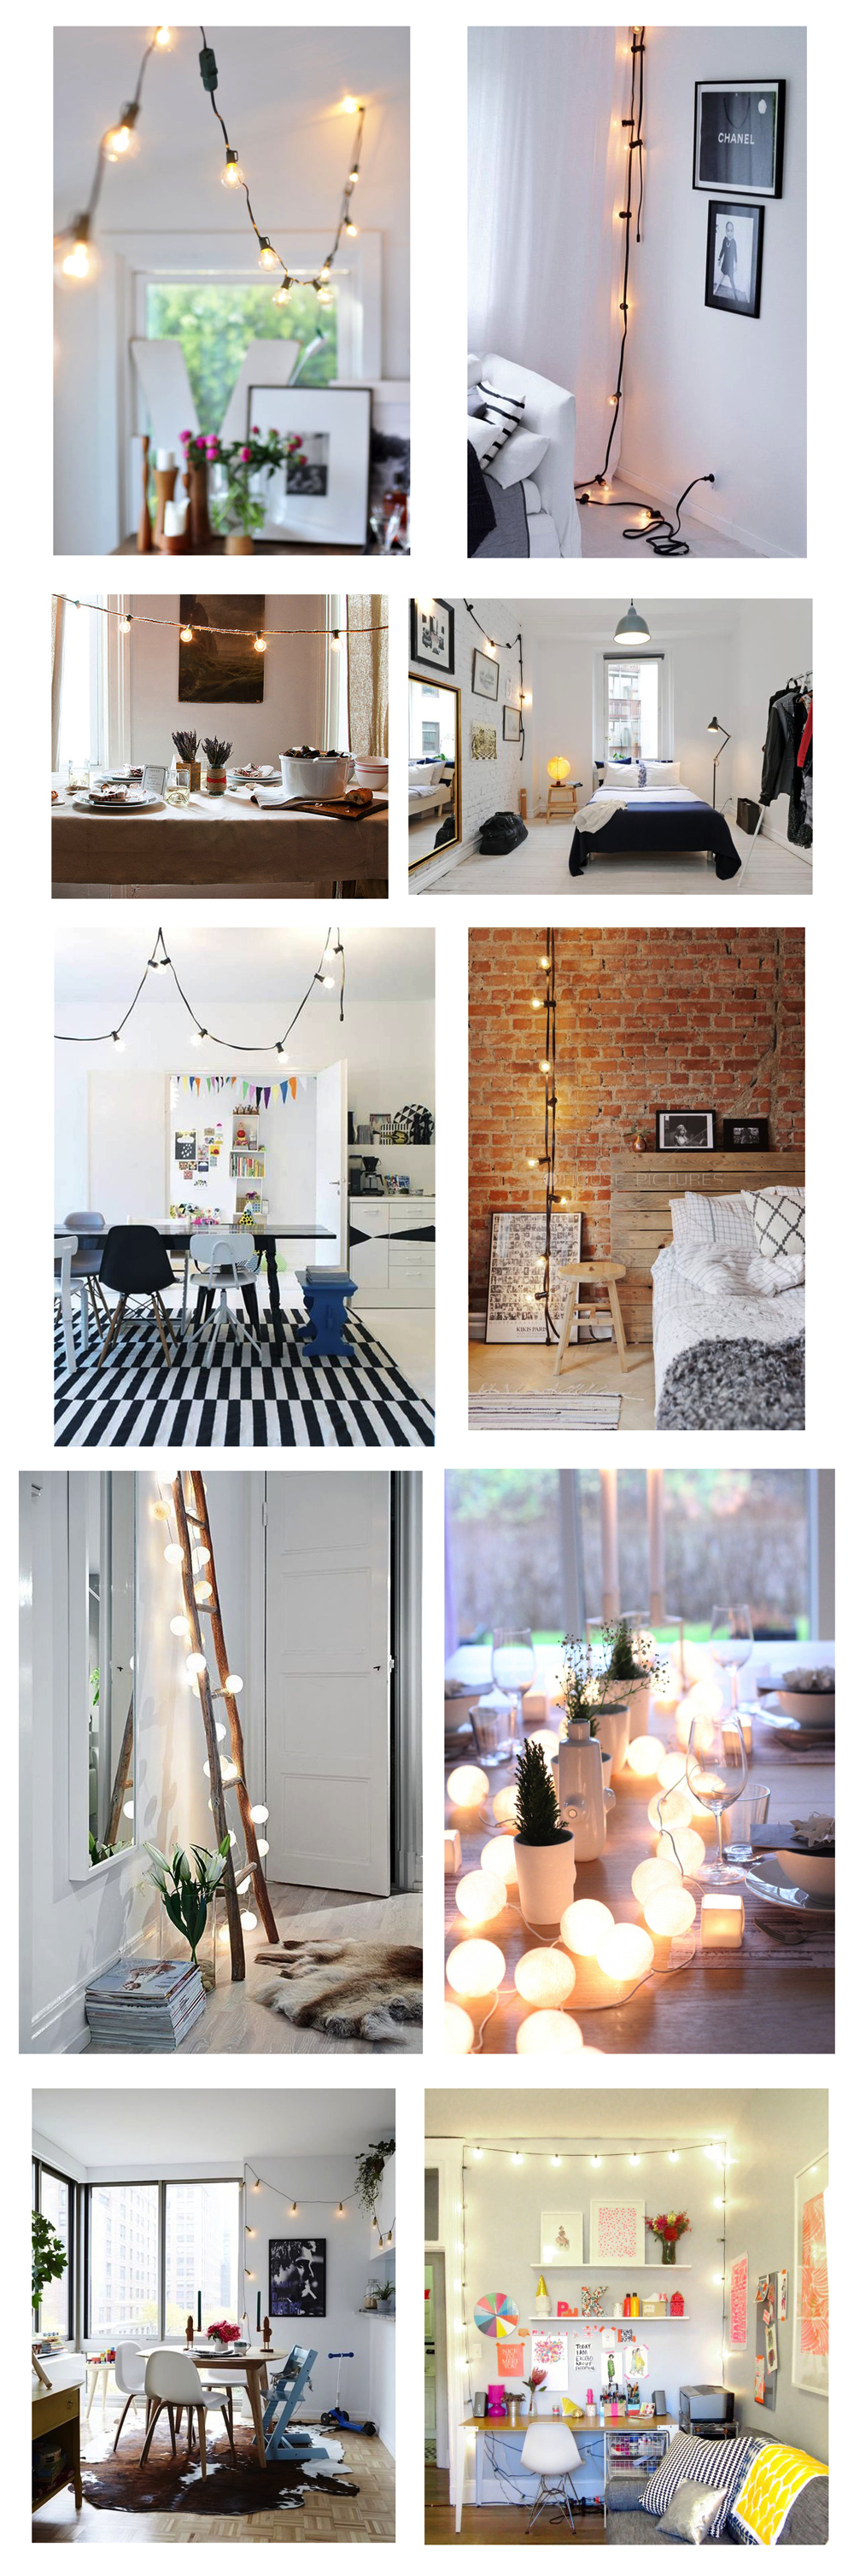 How-to-Decorate-with-Hanging-Globe-String-Lights-Indoors